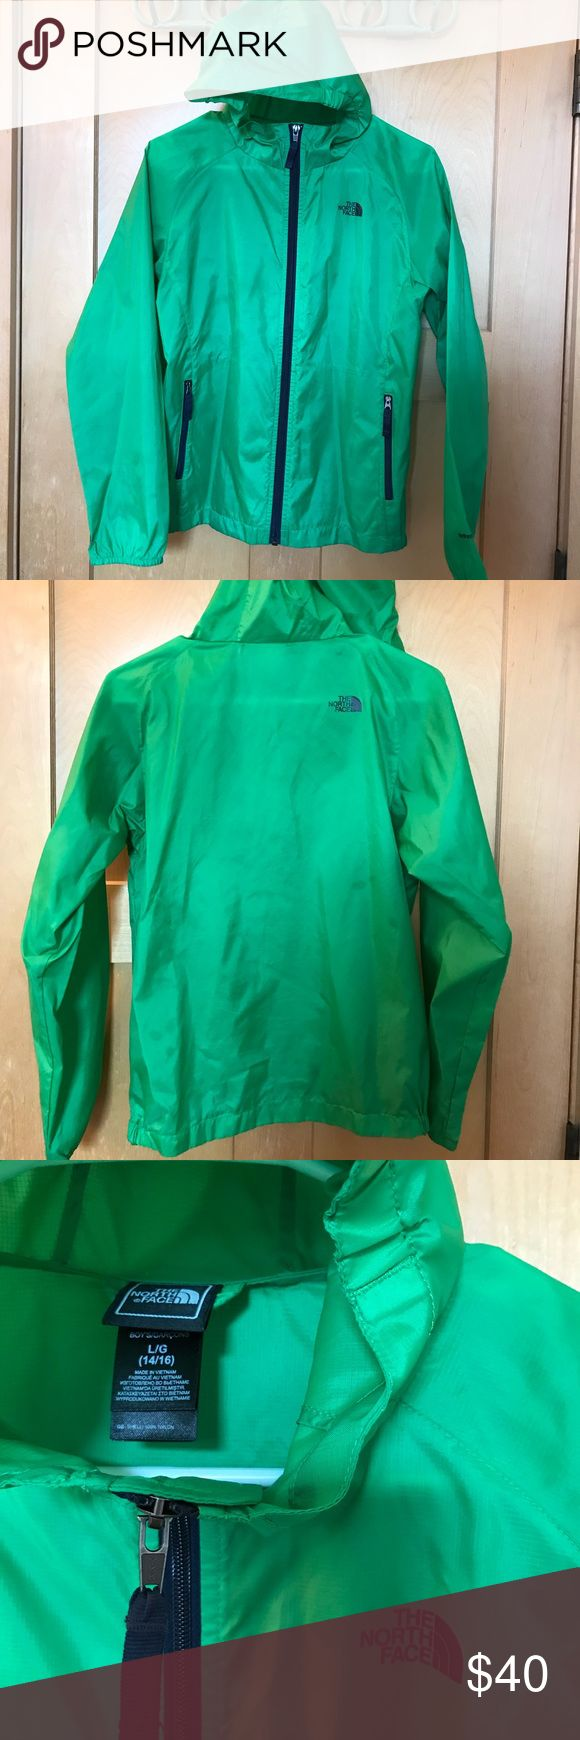 North Face windbreaker North Face green windbreaker. Children's 14-16. I am a woman's XS/S in North Face and this fits perfect. Like new North Face Jackets & Coats